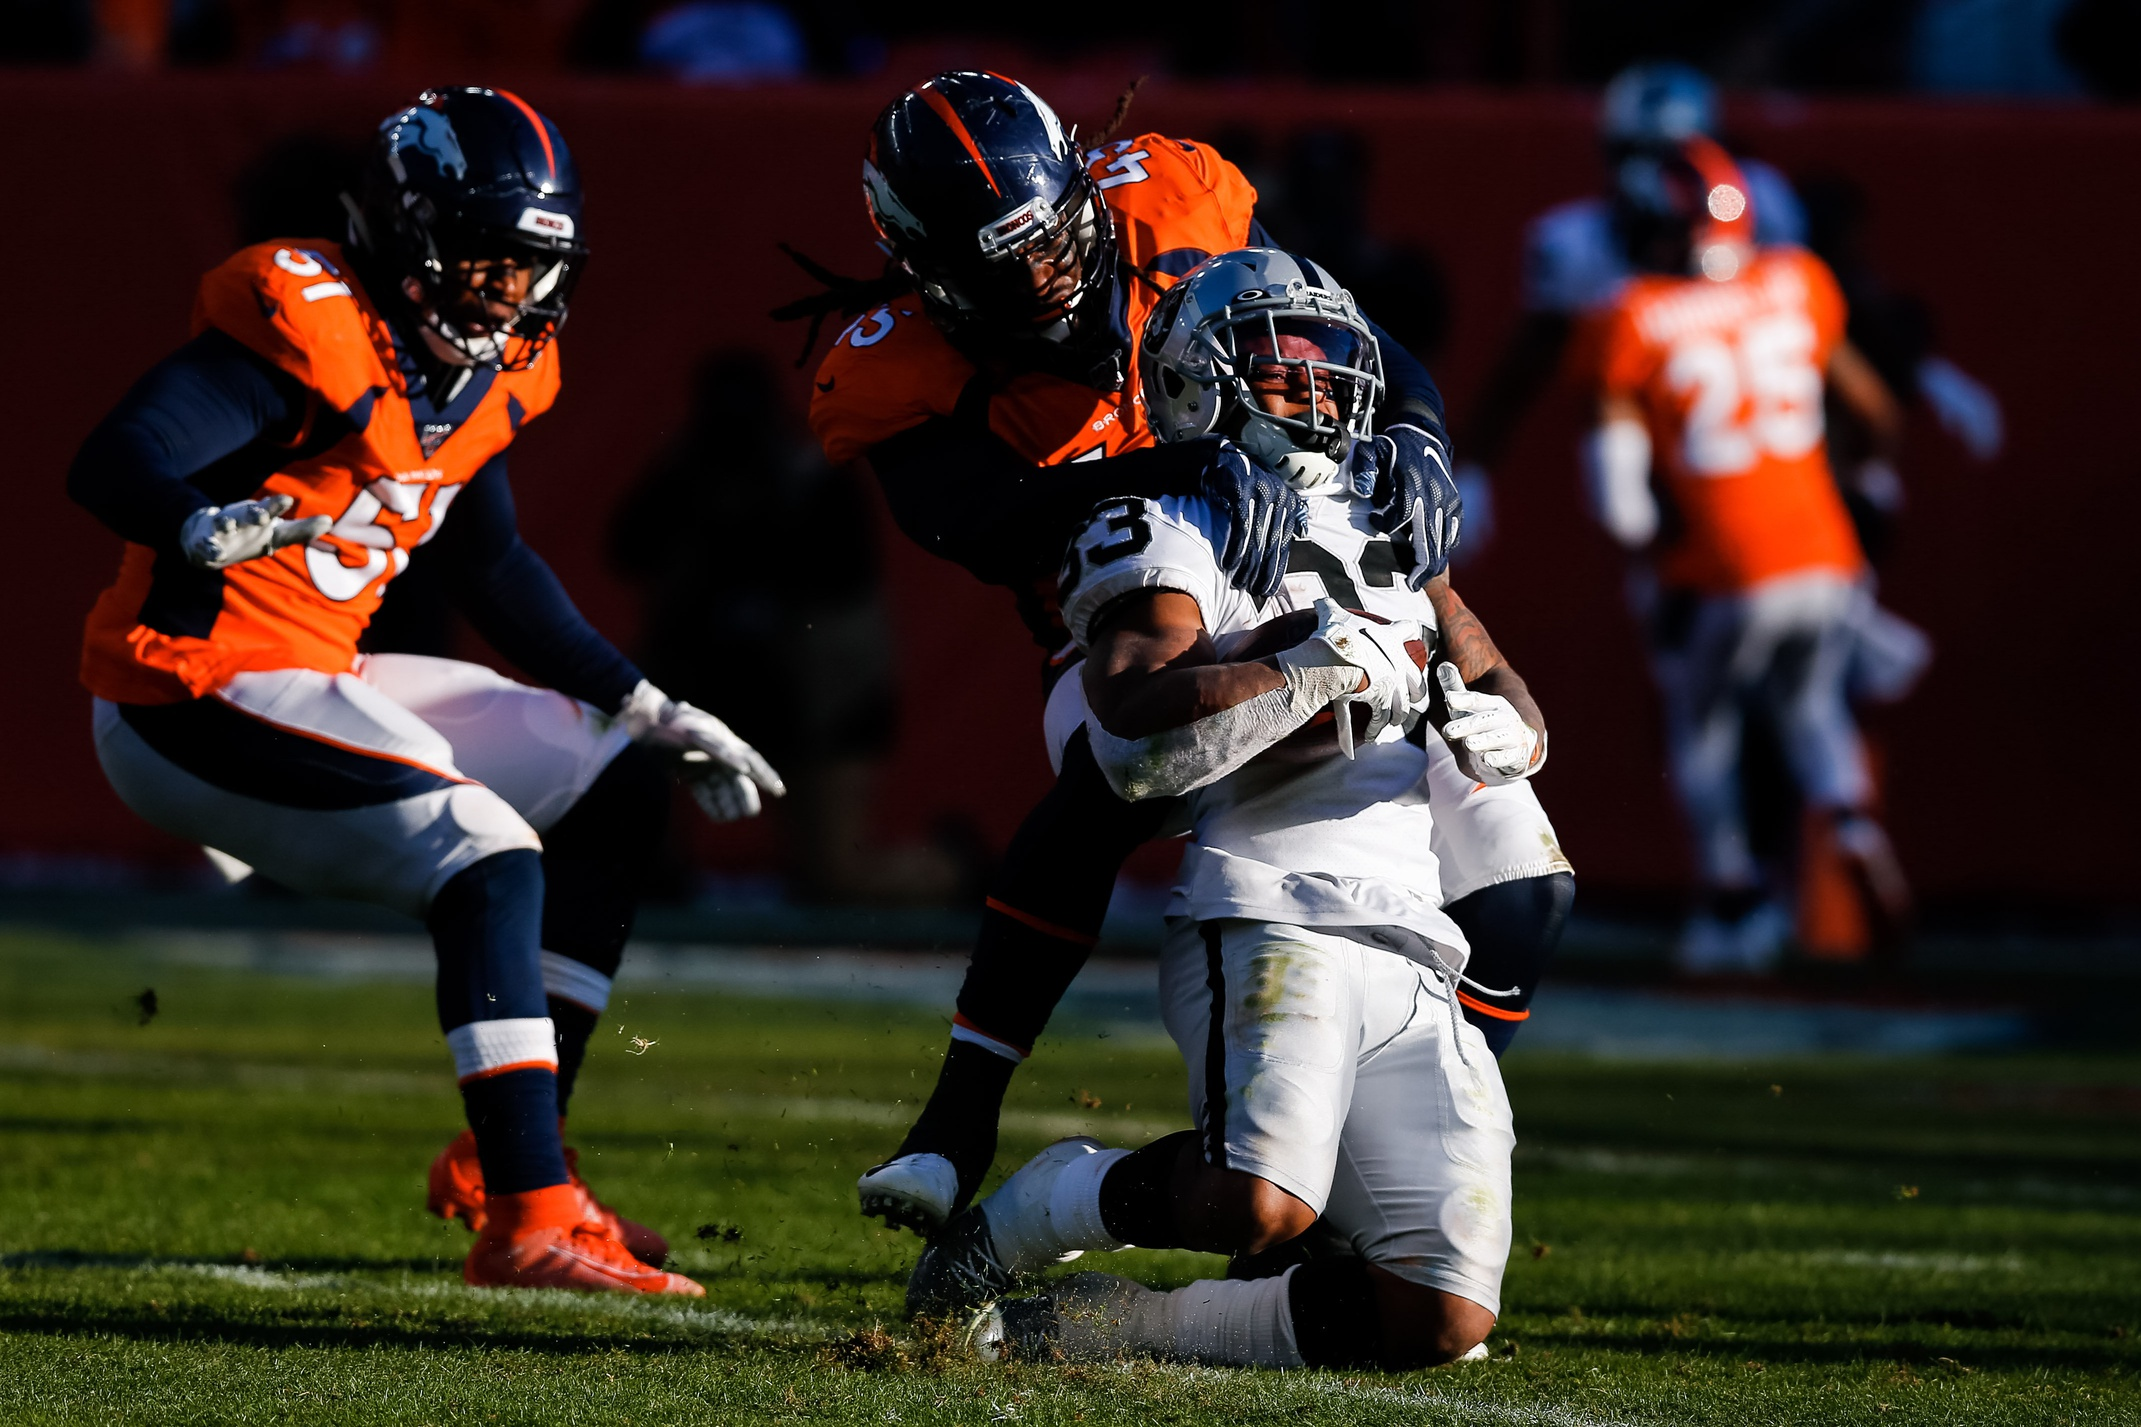 Broncos are Missing One Crucial Component in the LB Corps